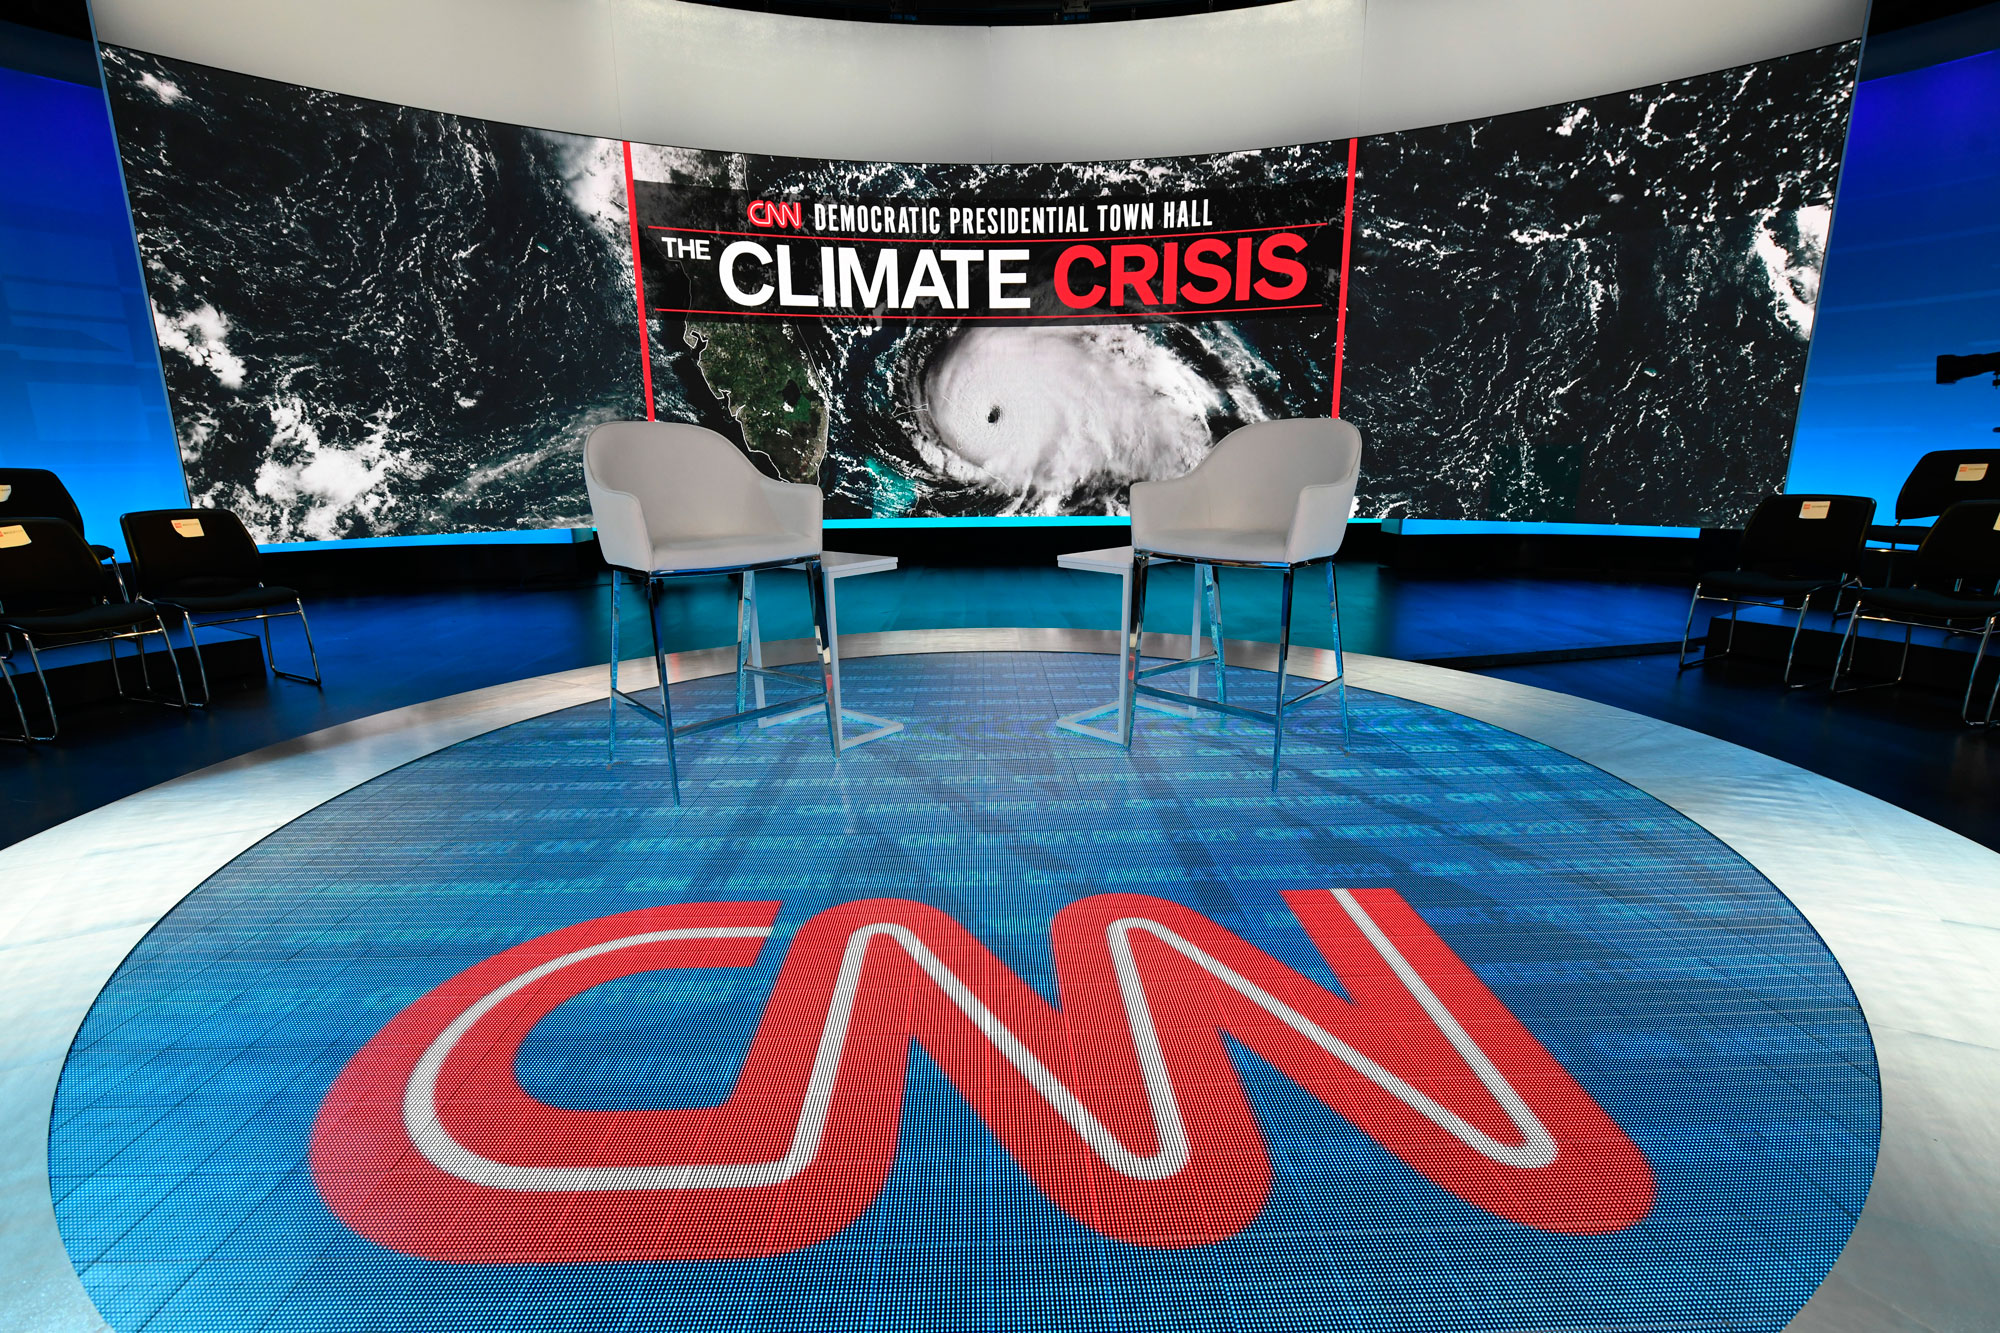 CNN Democratic Presidential Town Hall: The Climate Crisis  New York, NY  2019